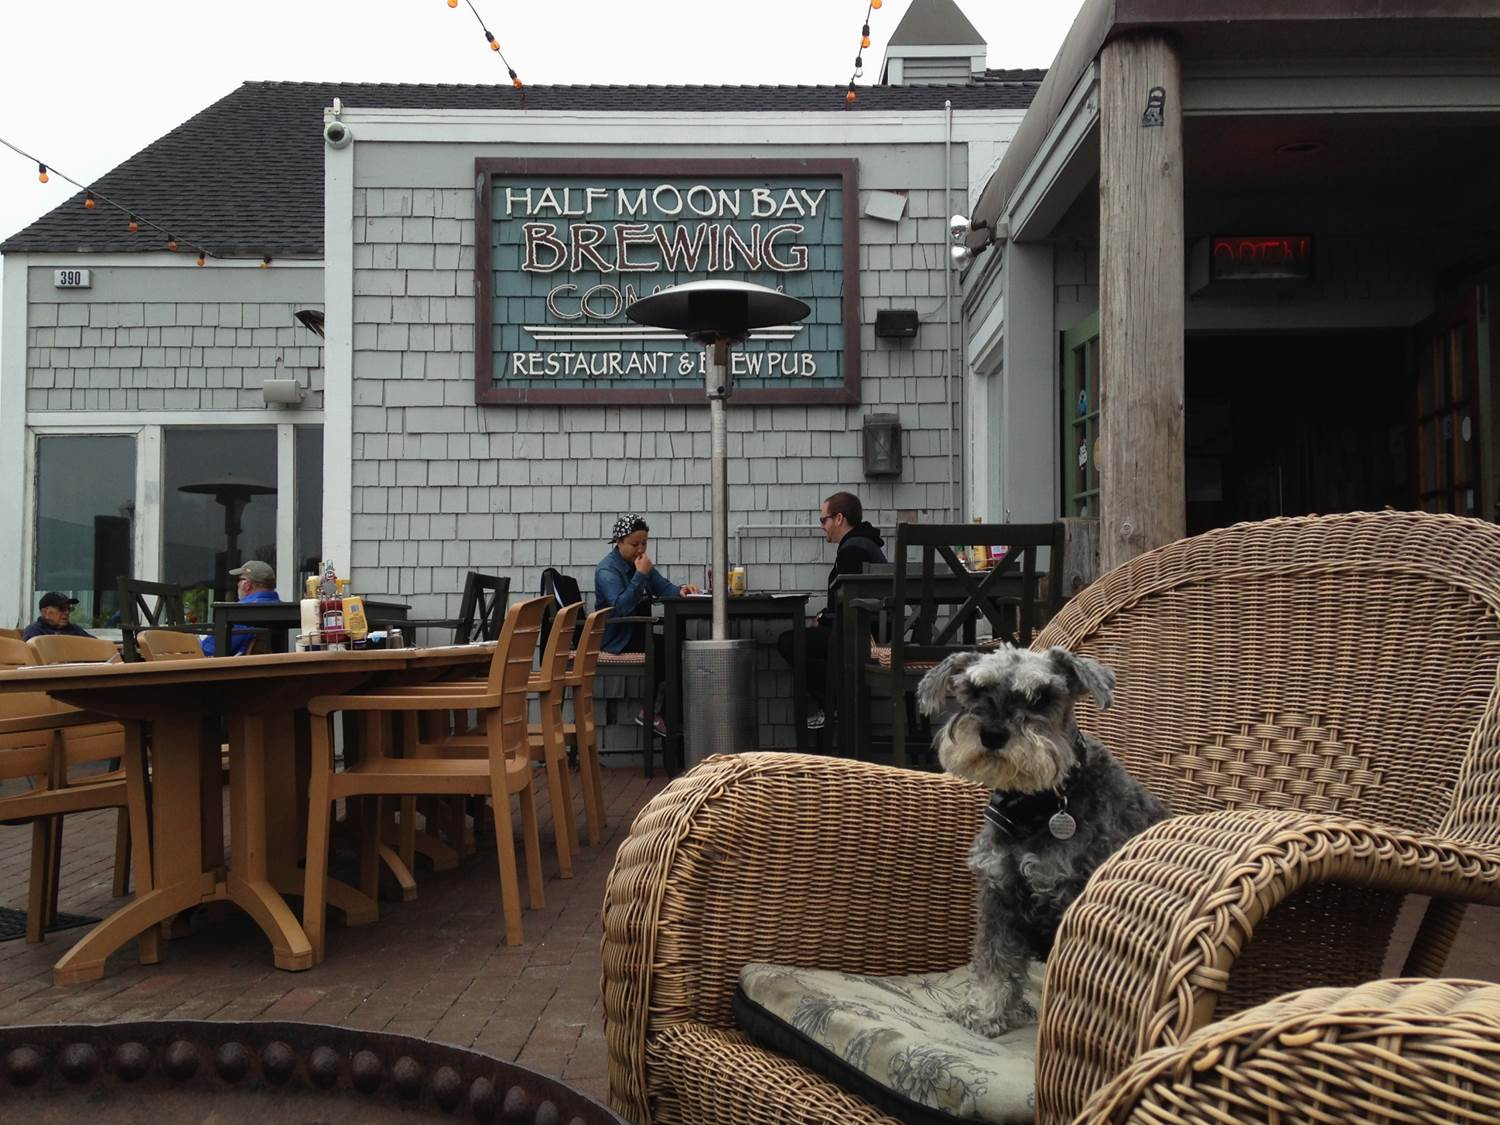 Dog Friendly travel - Half Moon Bay Brewing Co allows dogs